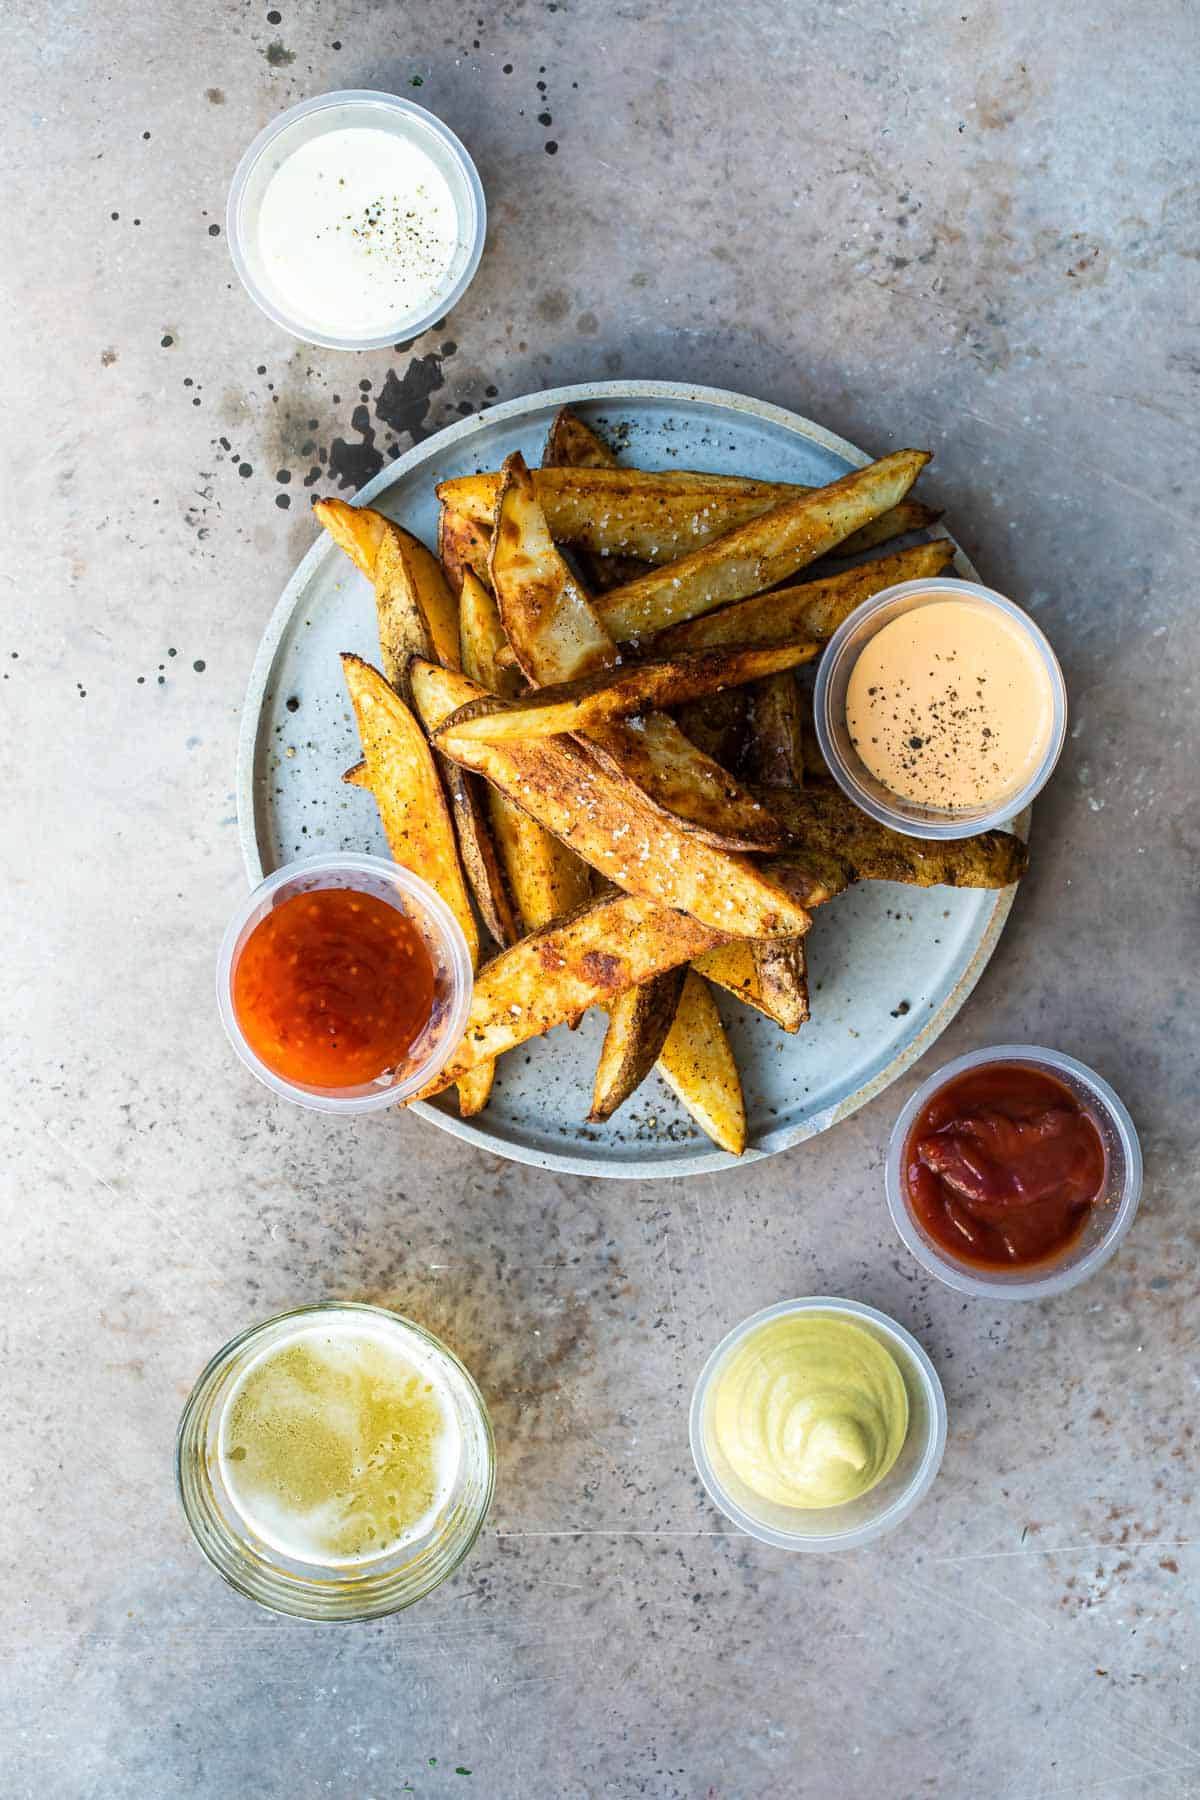 baked potato wedges served with various dipping sauces